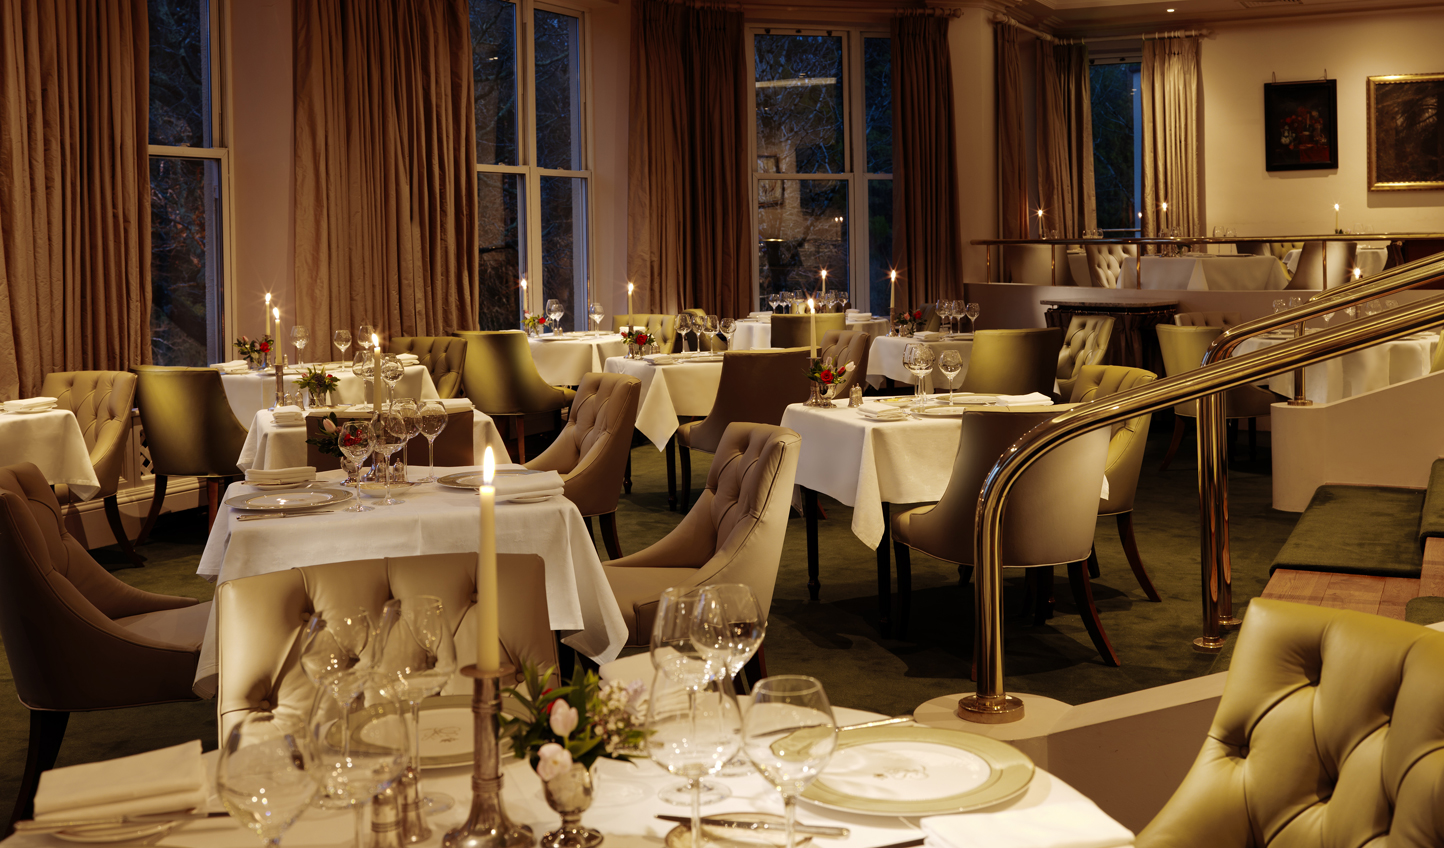 Book a table at The Falls Restaurant for a touch of gastronomy